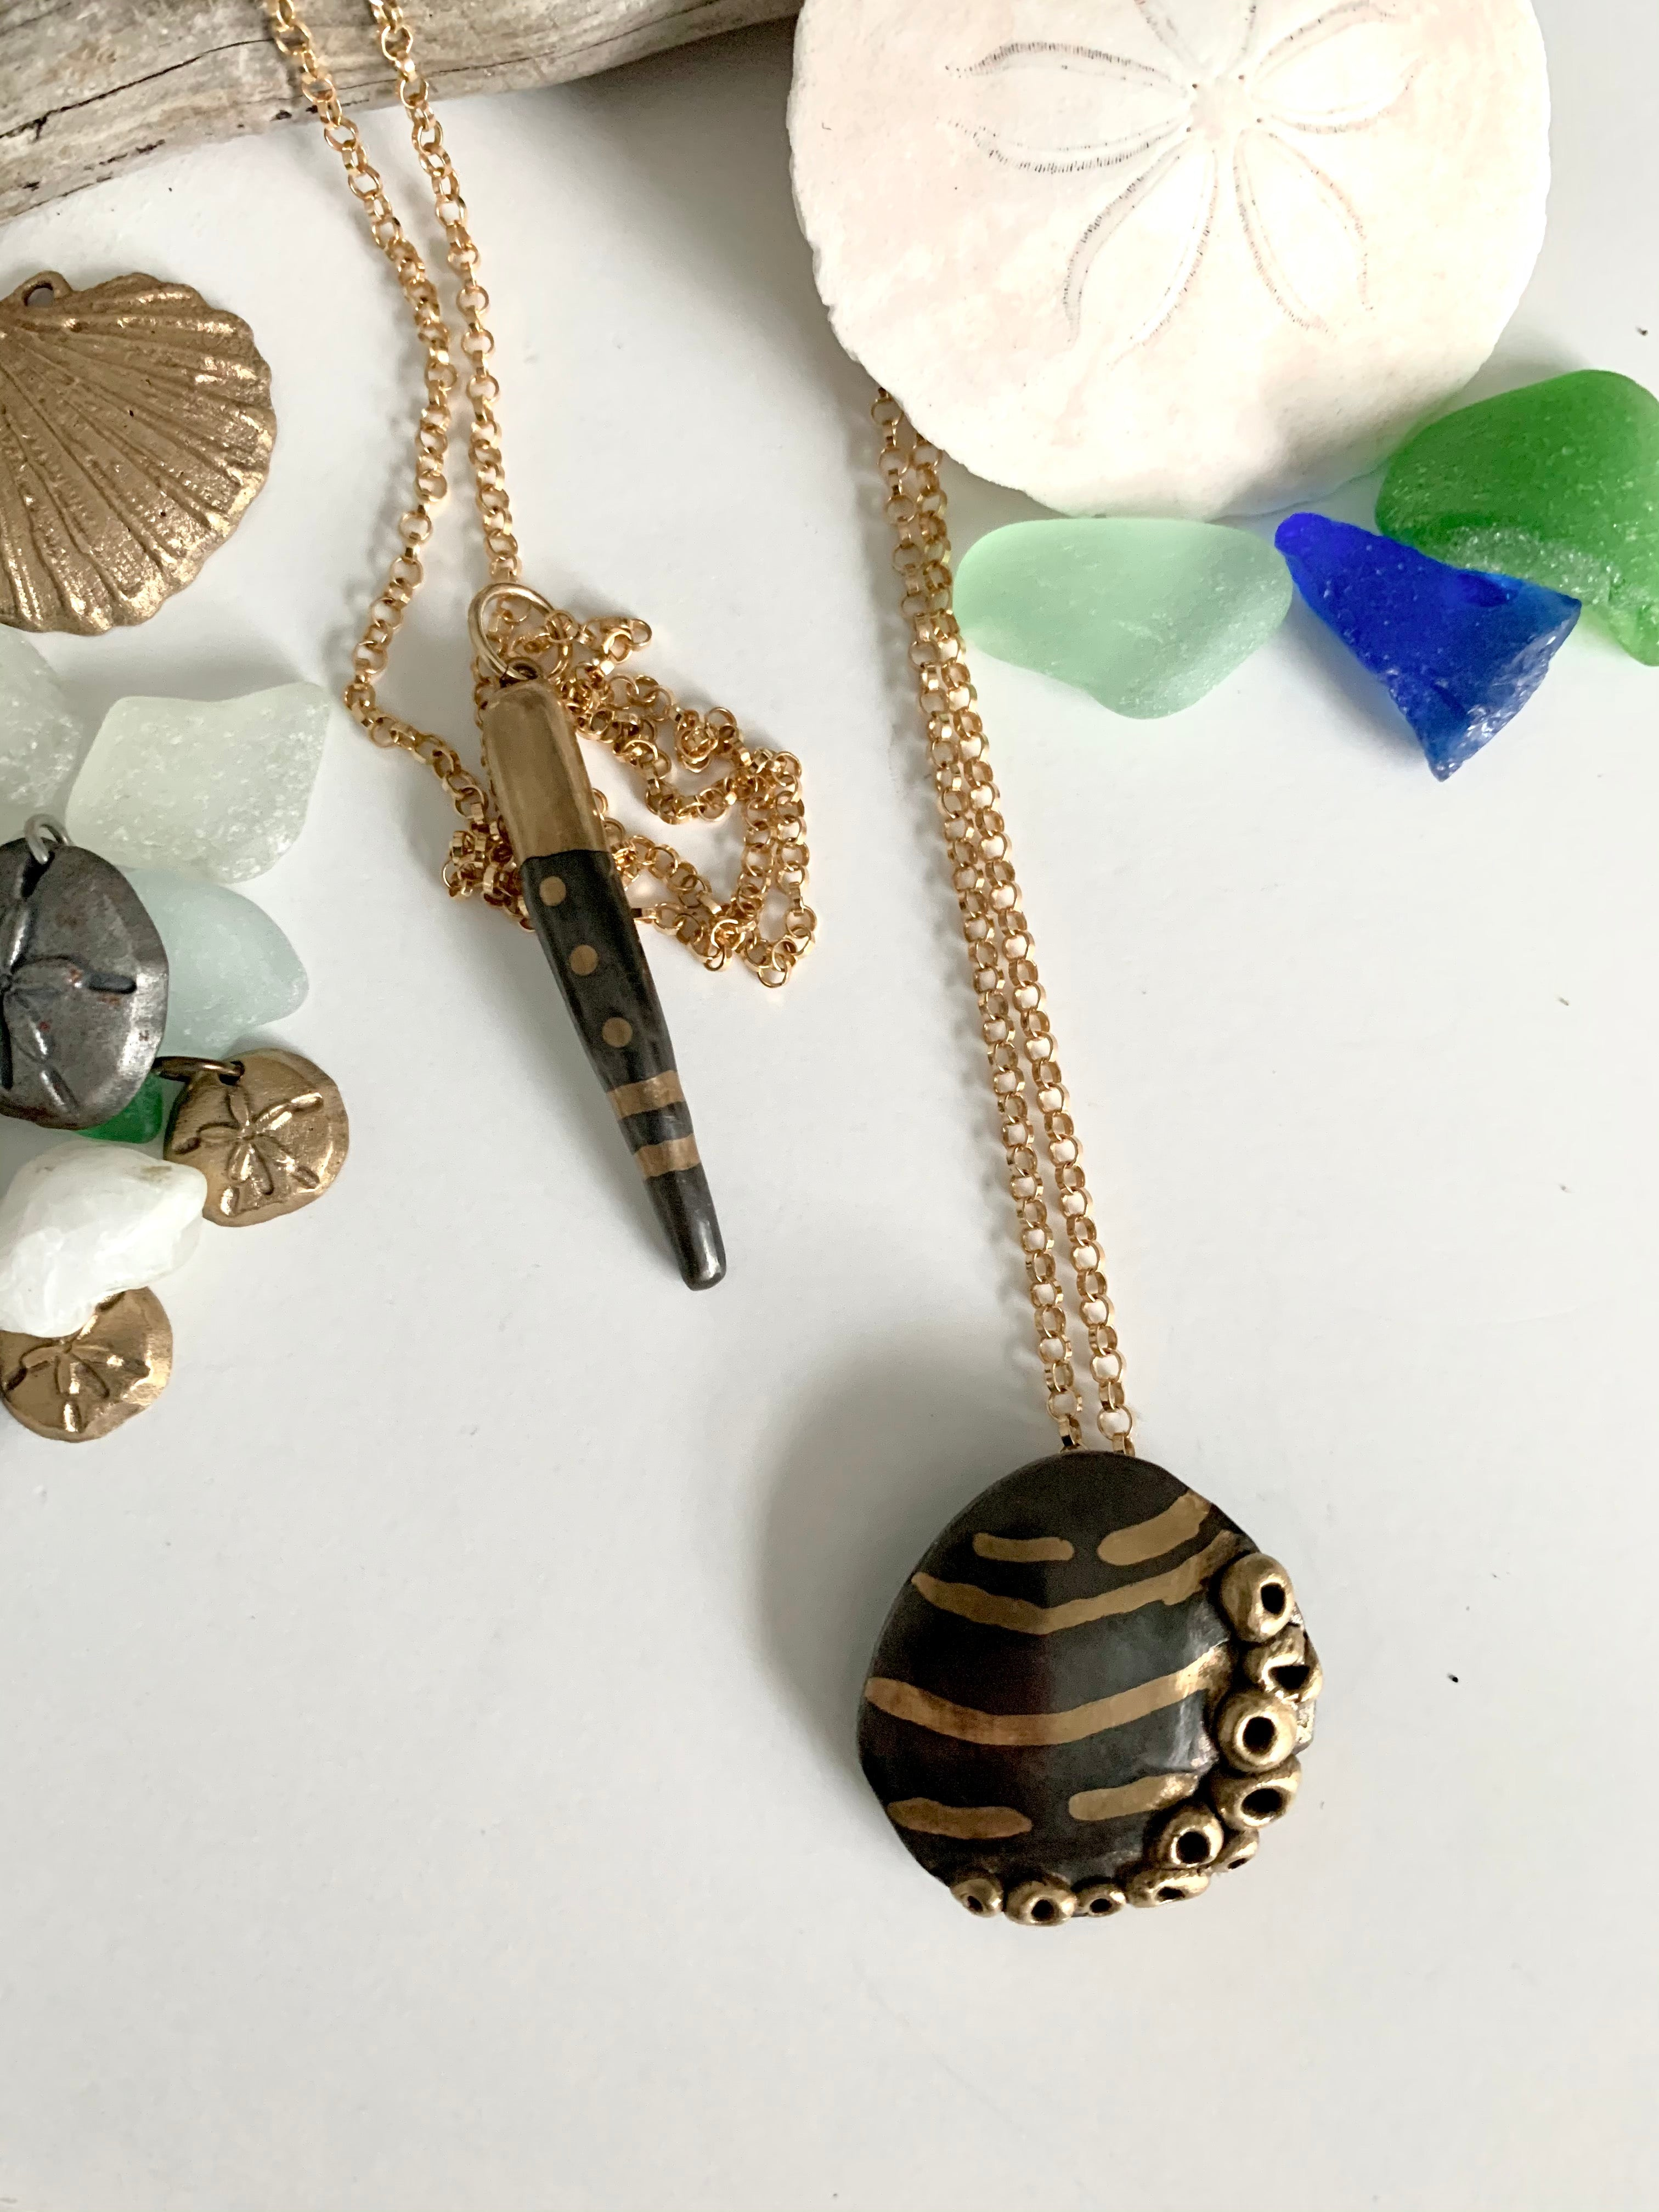 Seashell necklace hand made from steel and bronze